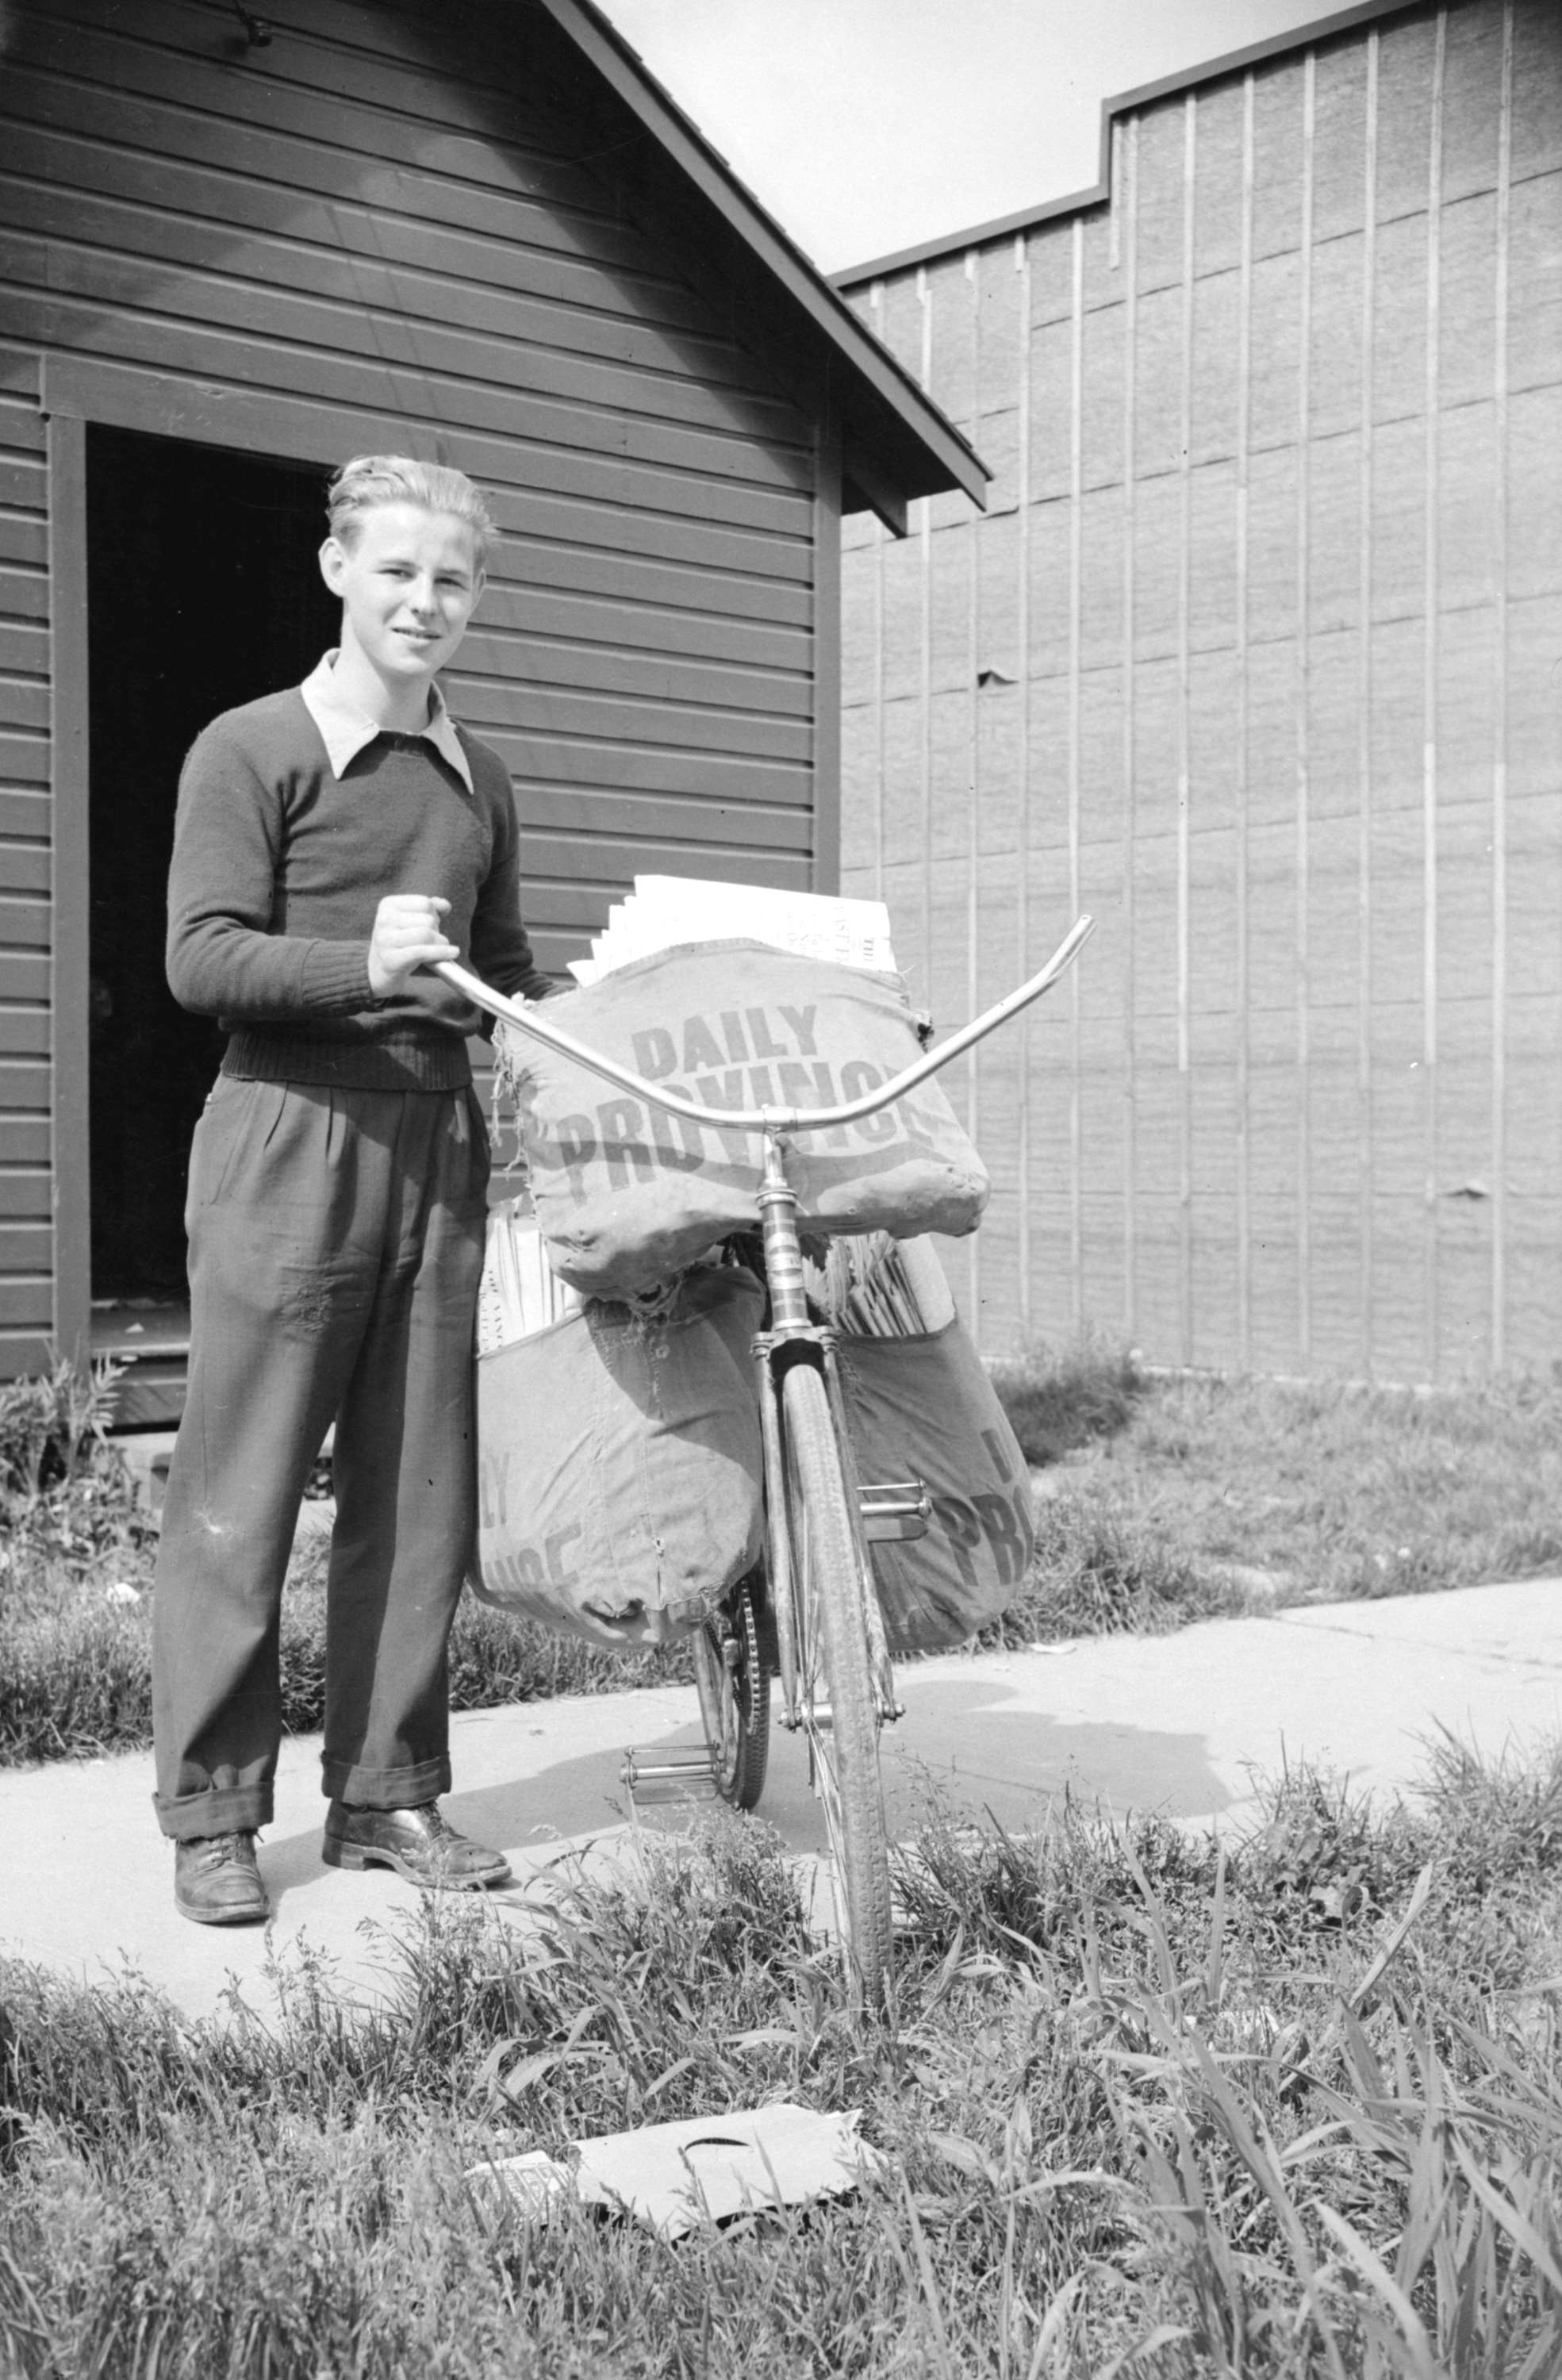 newspaper delivery boy with bicycle | Drive | Pinterest | Newspaper ...